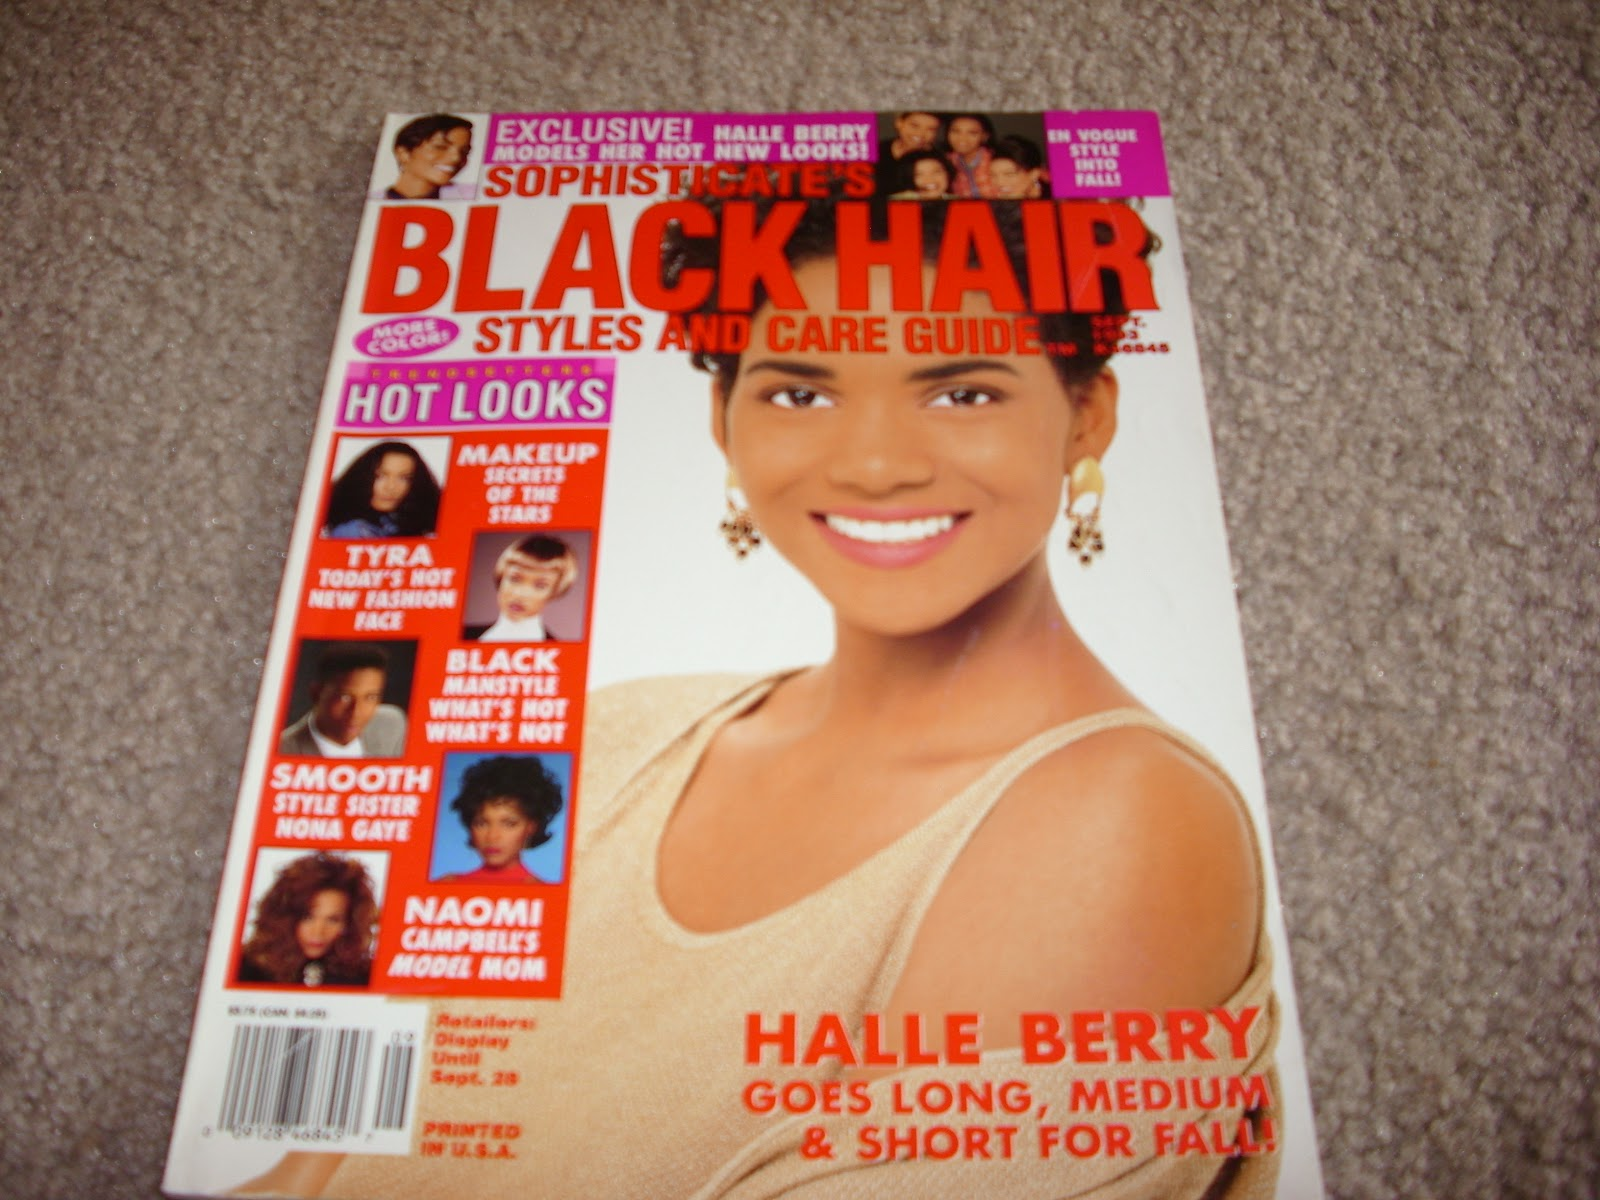 black hair pictures picture to download sophisticates black hair ...